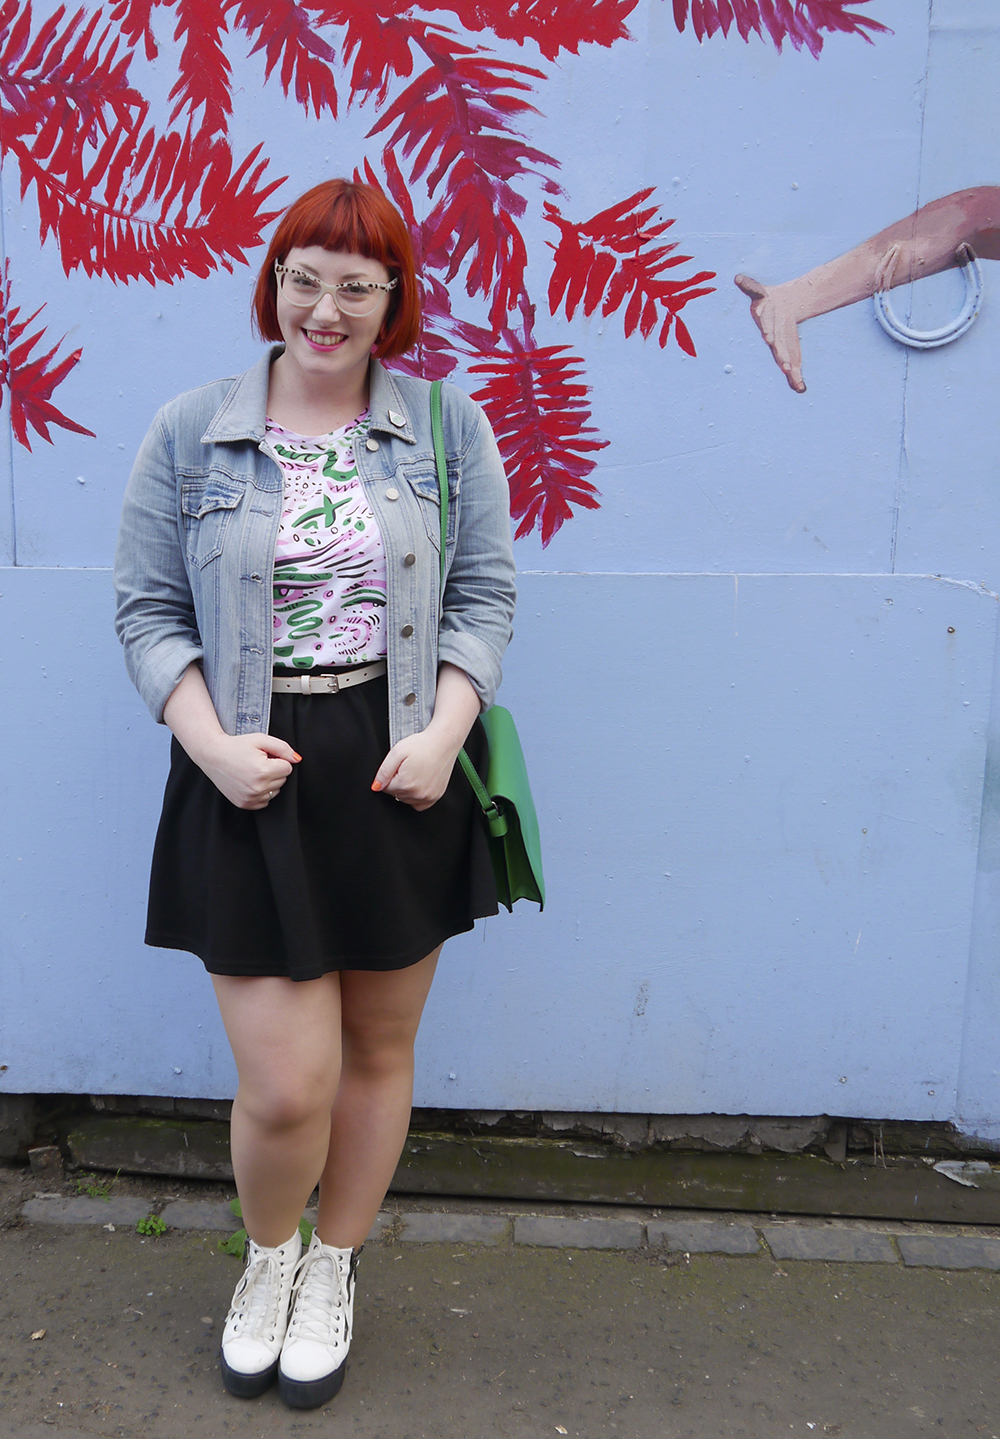 Wardrobe Conversations, styled by, Scottish Blogger, Edinburgh blogger, red hair, ginger bob, girl with glasses, Spex pistol glasses, Monki patterened tshirt, bright patterened tshirt, bright green handbag, black skater skirt, white lace up boots, Edinburgh street style, Jewellery club, cactus jewellery, cacti jewellery, plant jewellery, subscription box, jewellery subscription box, illustrated jewellery, denim jacket, Kirsty Whiten, Kirsty Whiten Street art, street art Edinburgh, House of Wonderland, #monkistyle